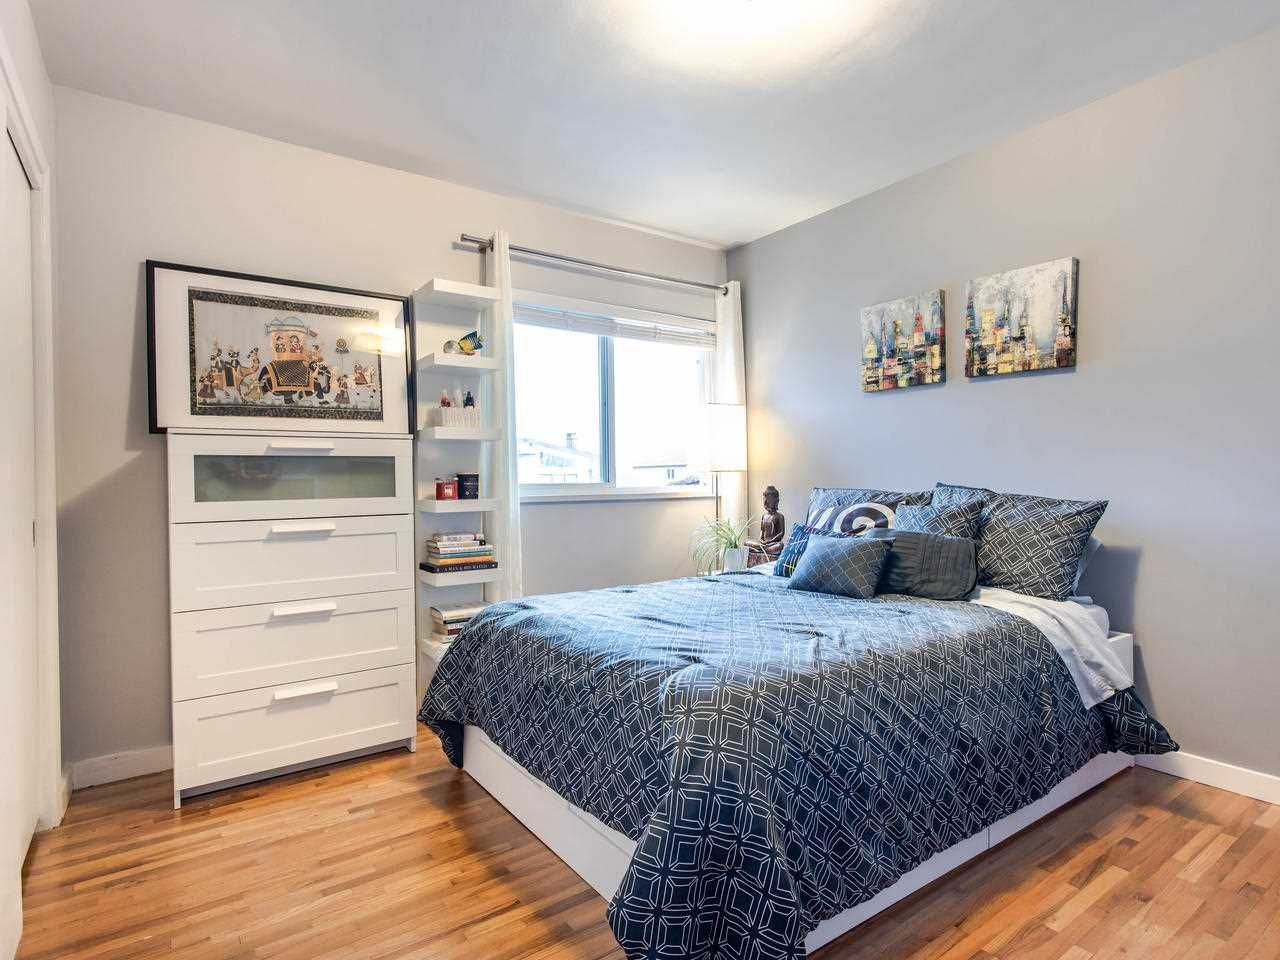 Photo 10: Photos: 4653 UNION STREET in Burnaby: Capitol Hill BN House for sale (Burnaby North)  : MLS®# R2493161